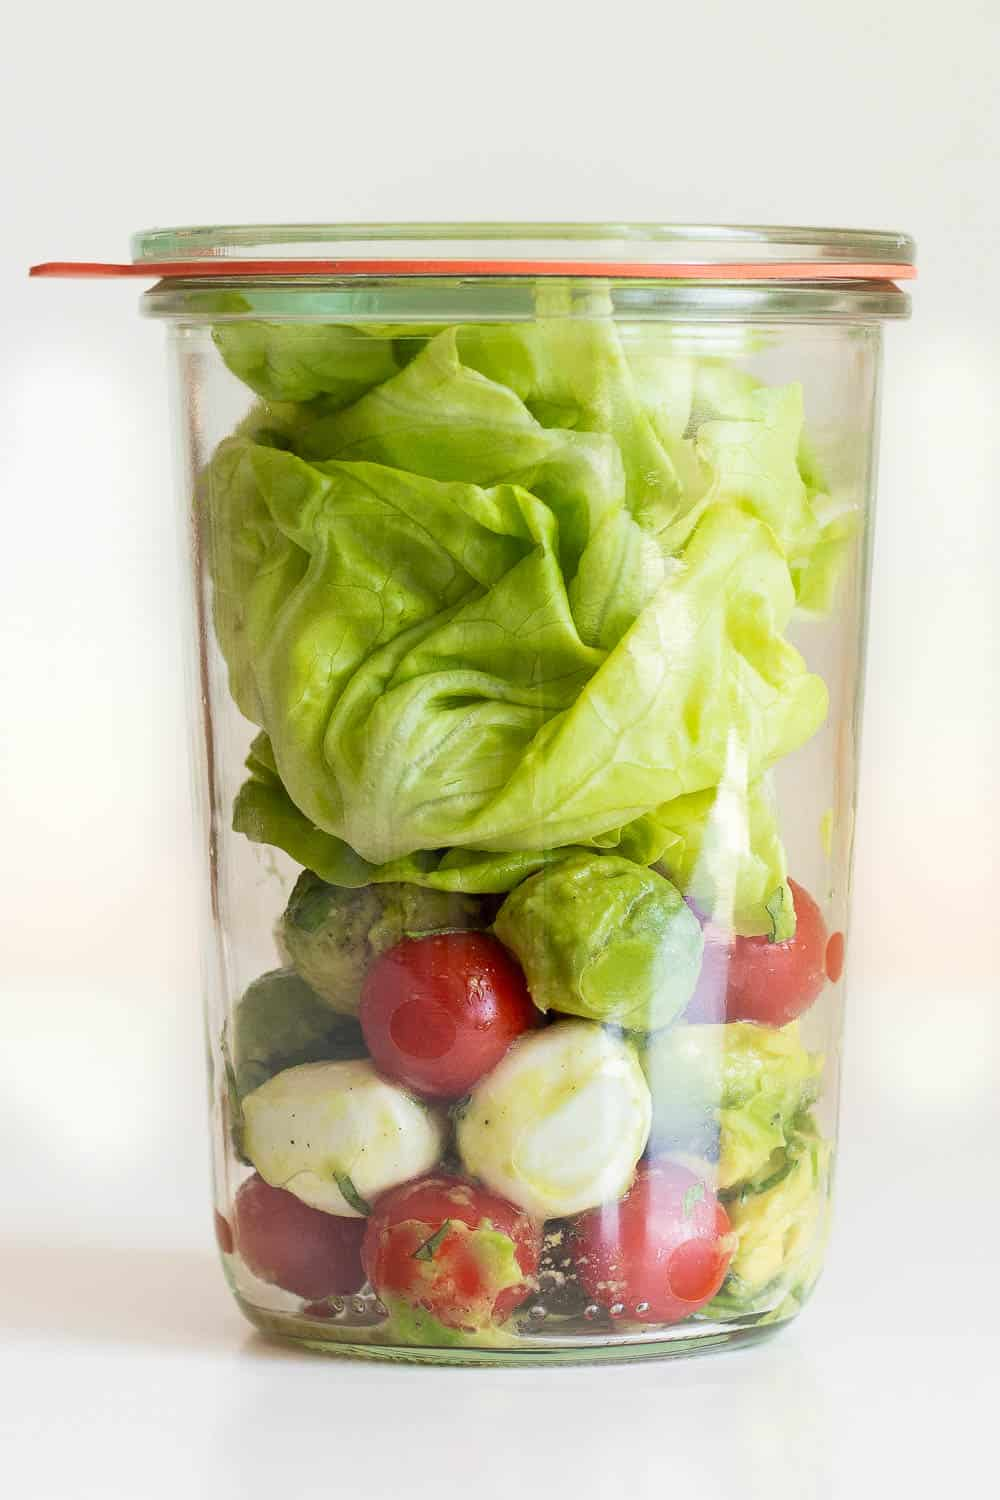 Avocado Tomato Salad ina meal prep container